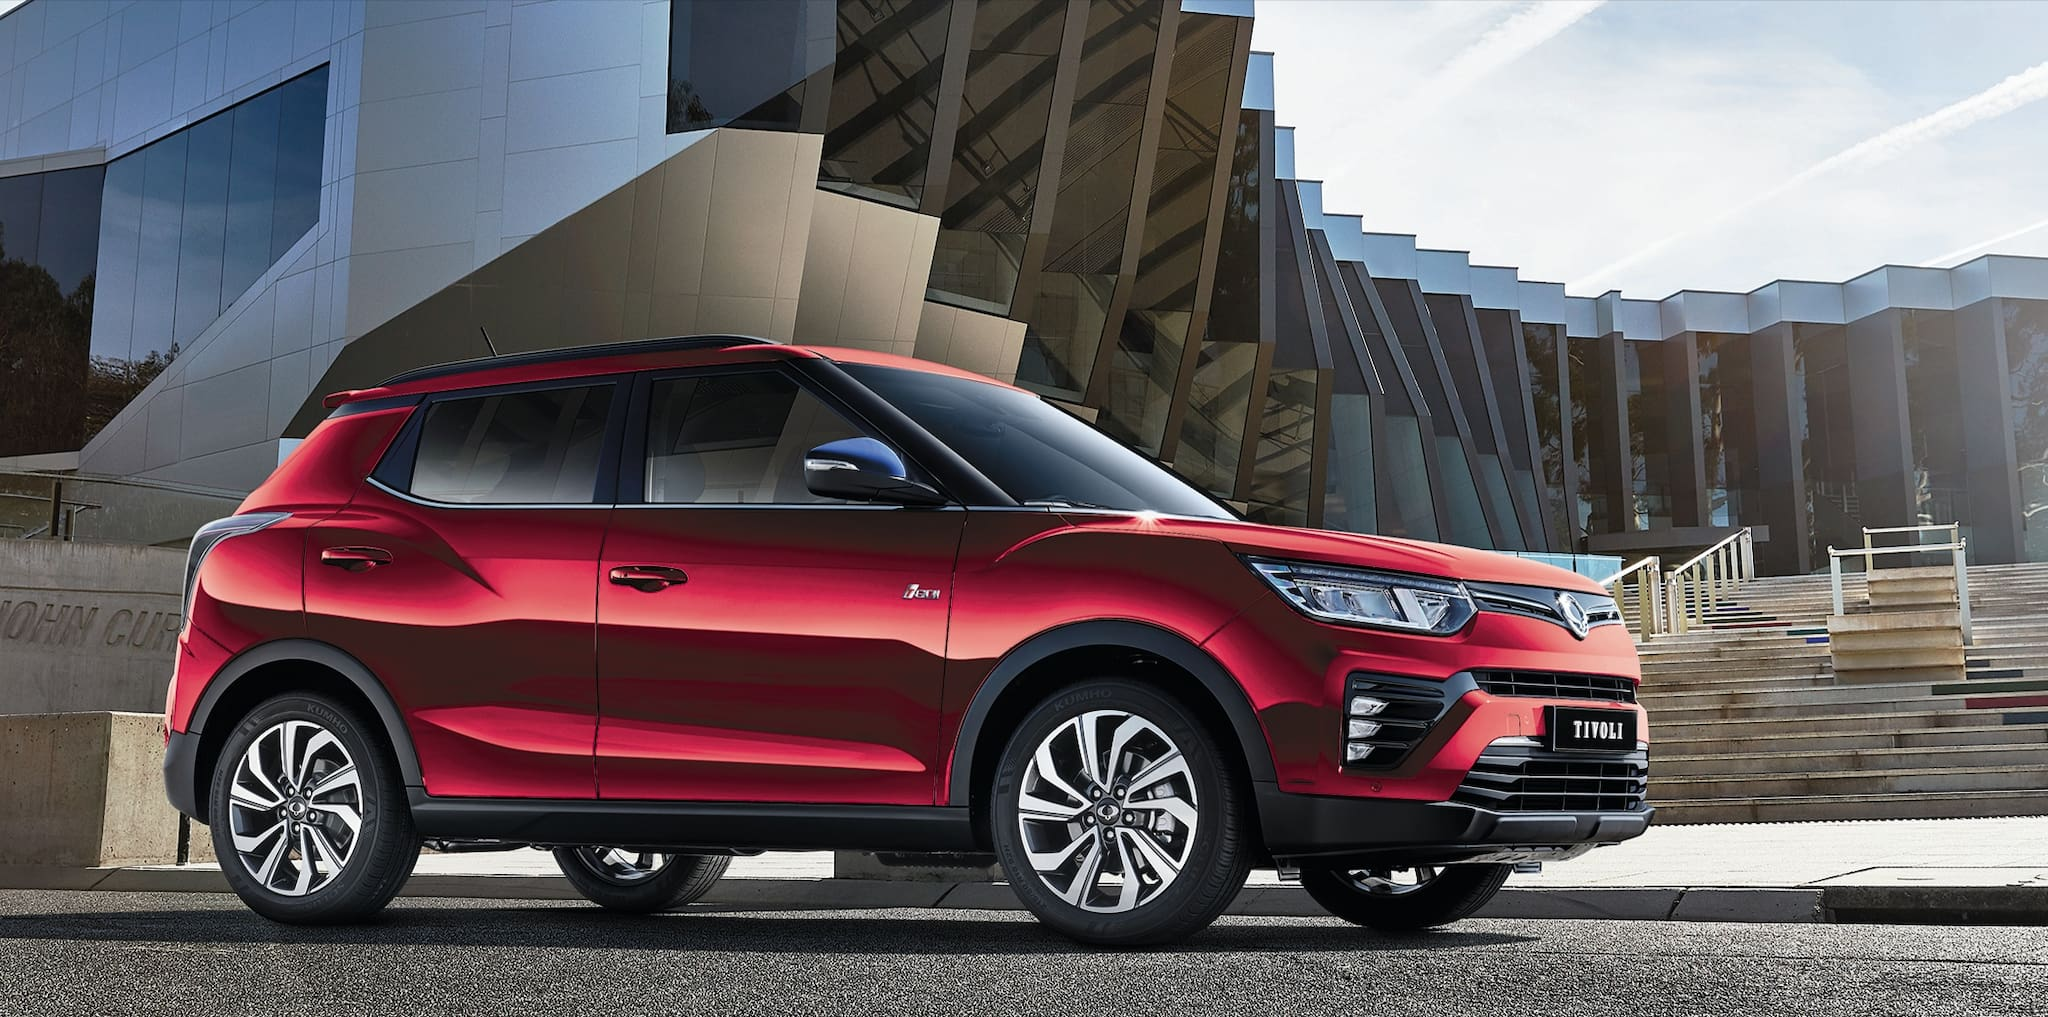 Will the Ssangyong Tivoli Gasoline variant be Phased Out in PH by Yearend?